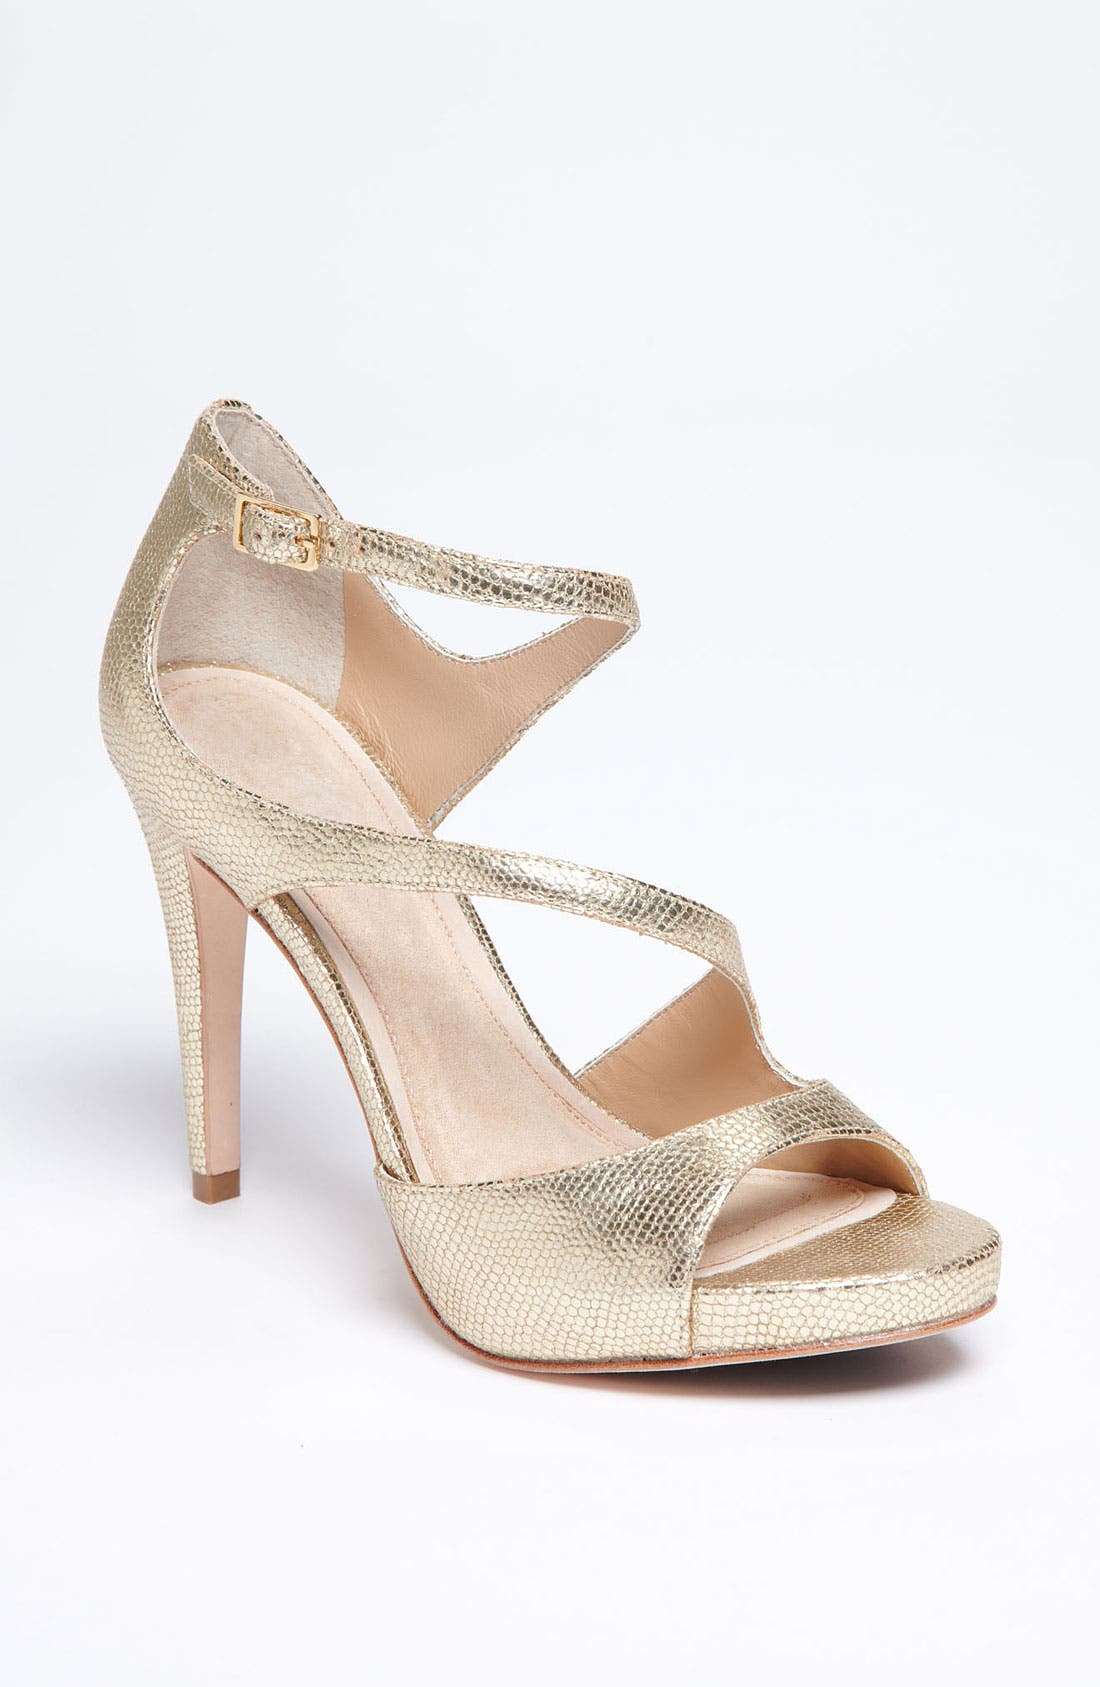 Alternate Image 1 Selected - Diane von Furstenberg 'Jujette' Sandal (Online Only)